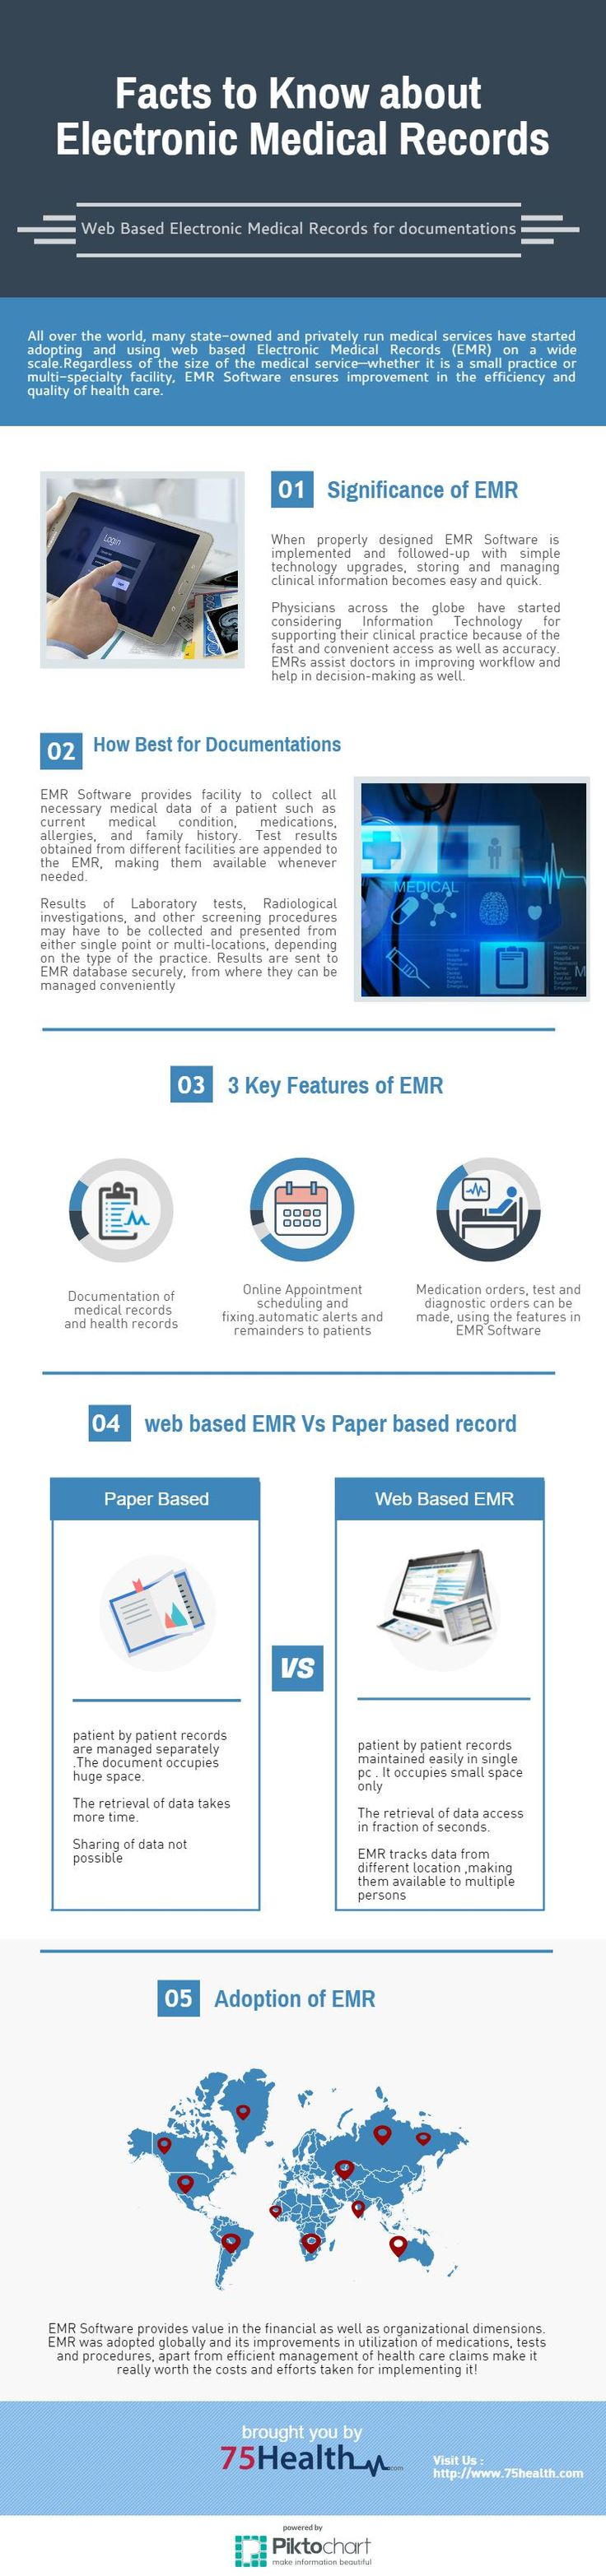 Facts to know about Electronic medical records for documentation source link: https://magic.piktochart.com/output/14558009-emr-info